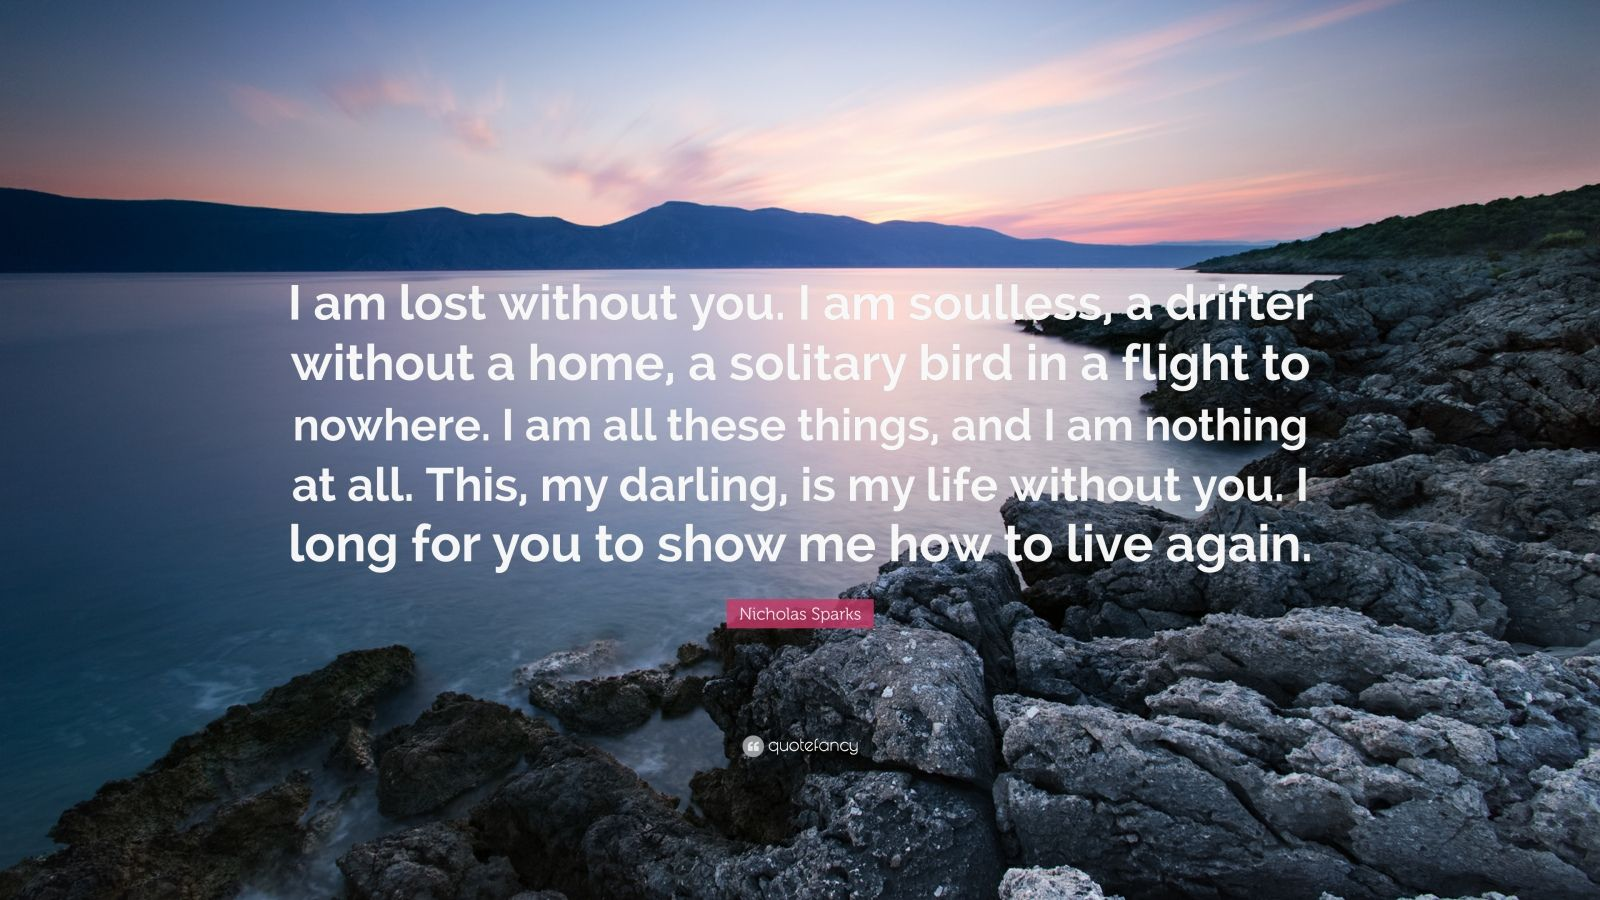 "Nicholas Sparks Quote: ""I am lost without you. I am soulless, a drifter without a home, a solitary bird in a flight to nowhere. I am all these things, and I am nothing at all. This, my darling, is my life without you. I long for you to show me how to live again."""